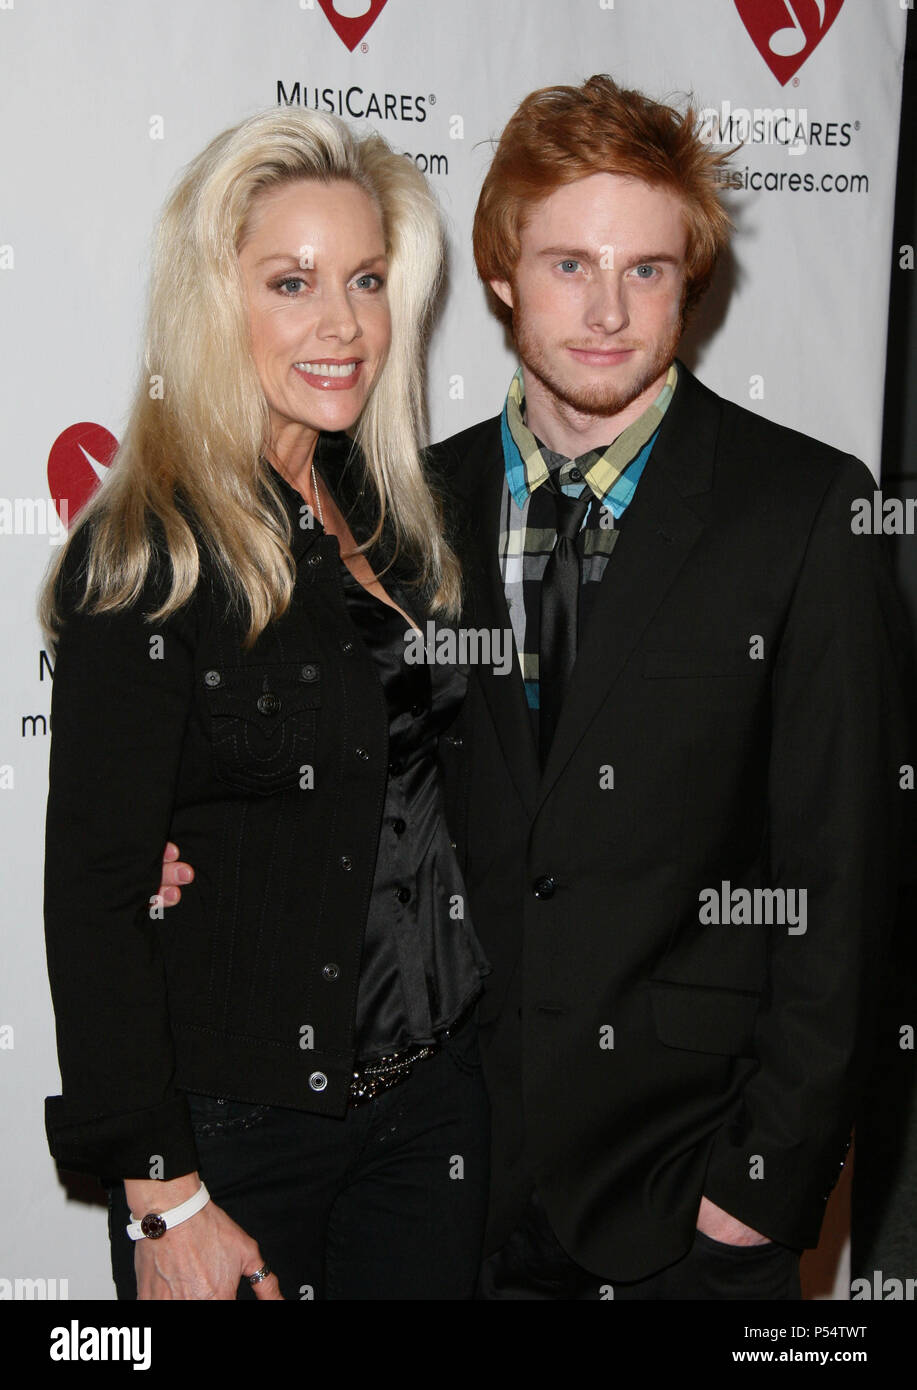 Cherie Currie Stock Photos & Cherie Currie Stock Images - Alamy